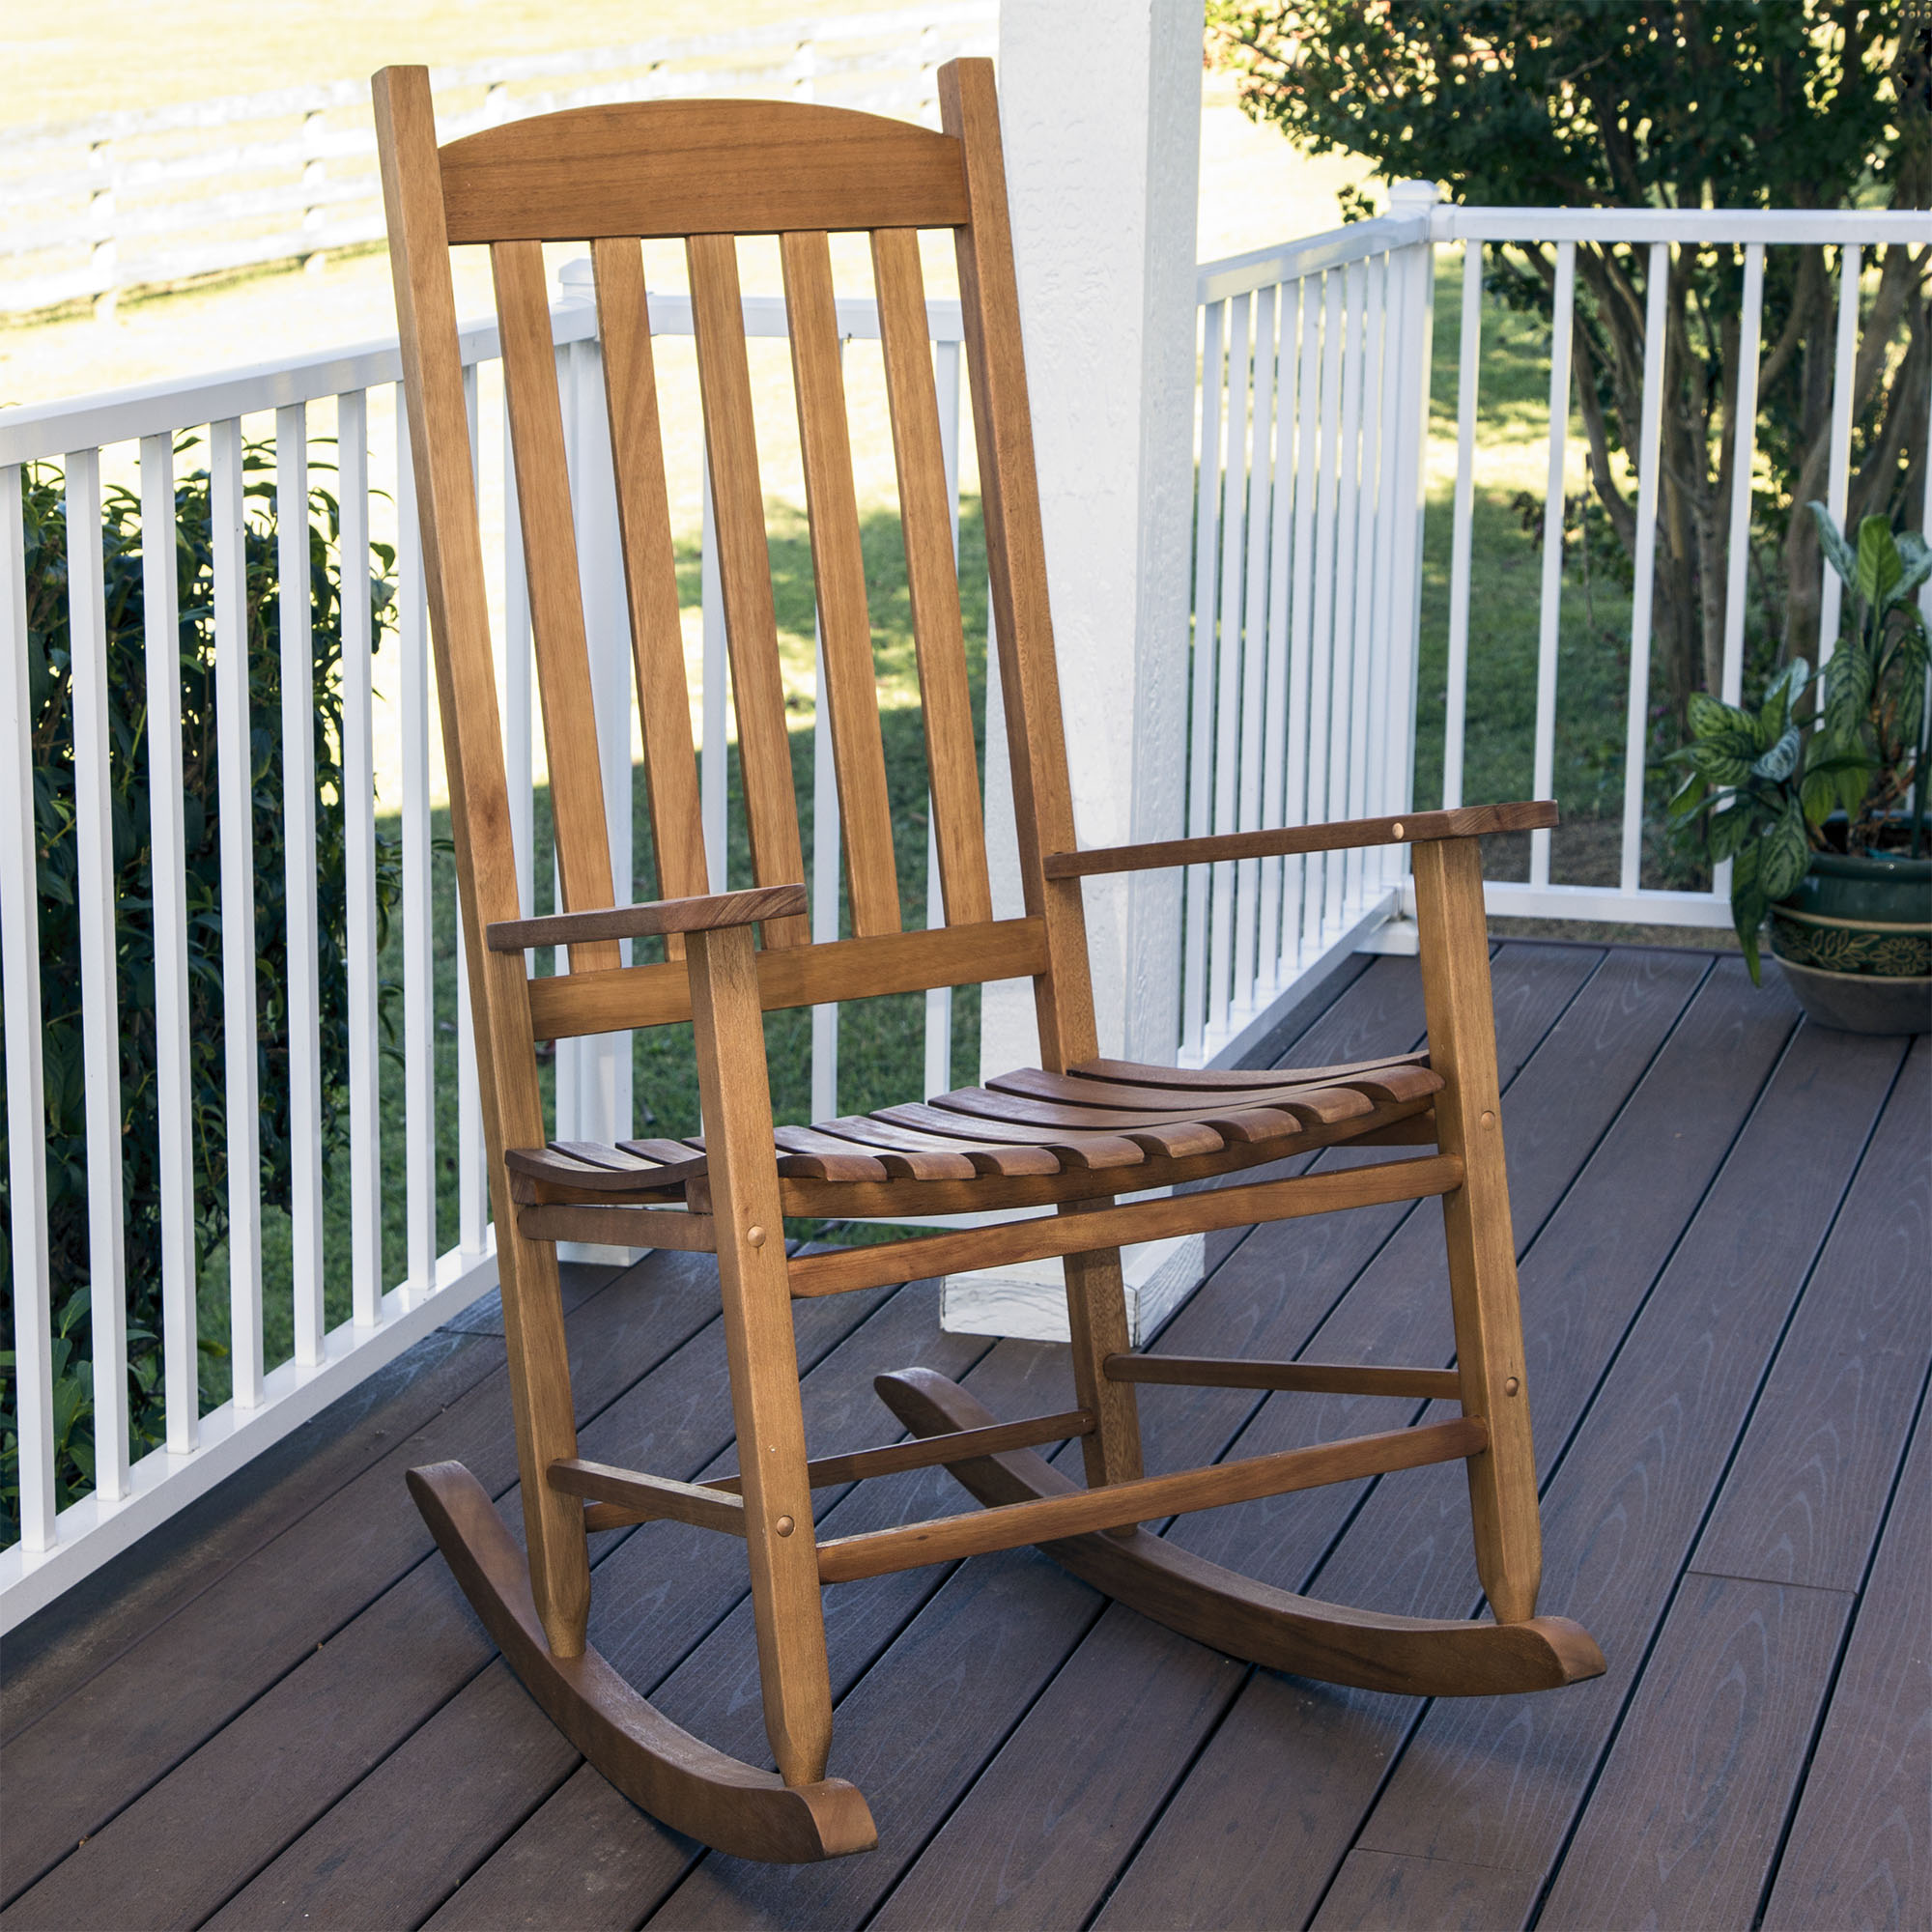 Mainstays Outdoor Natural Wood Slat Rocking Chair